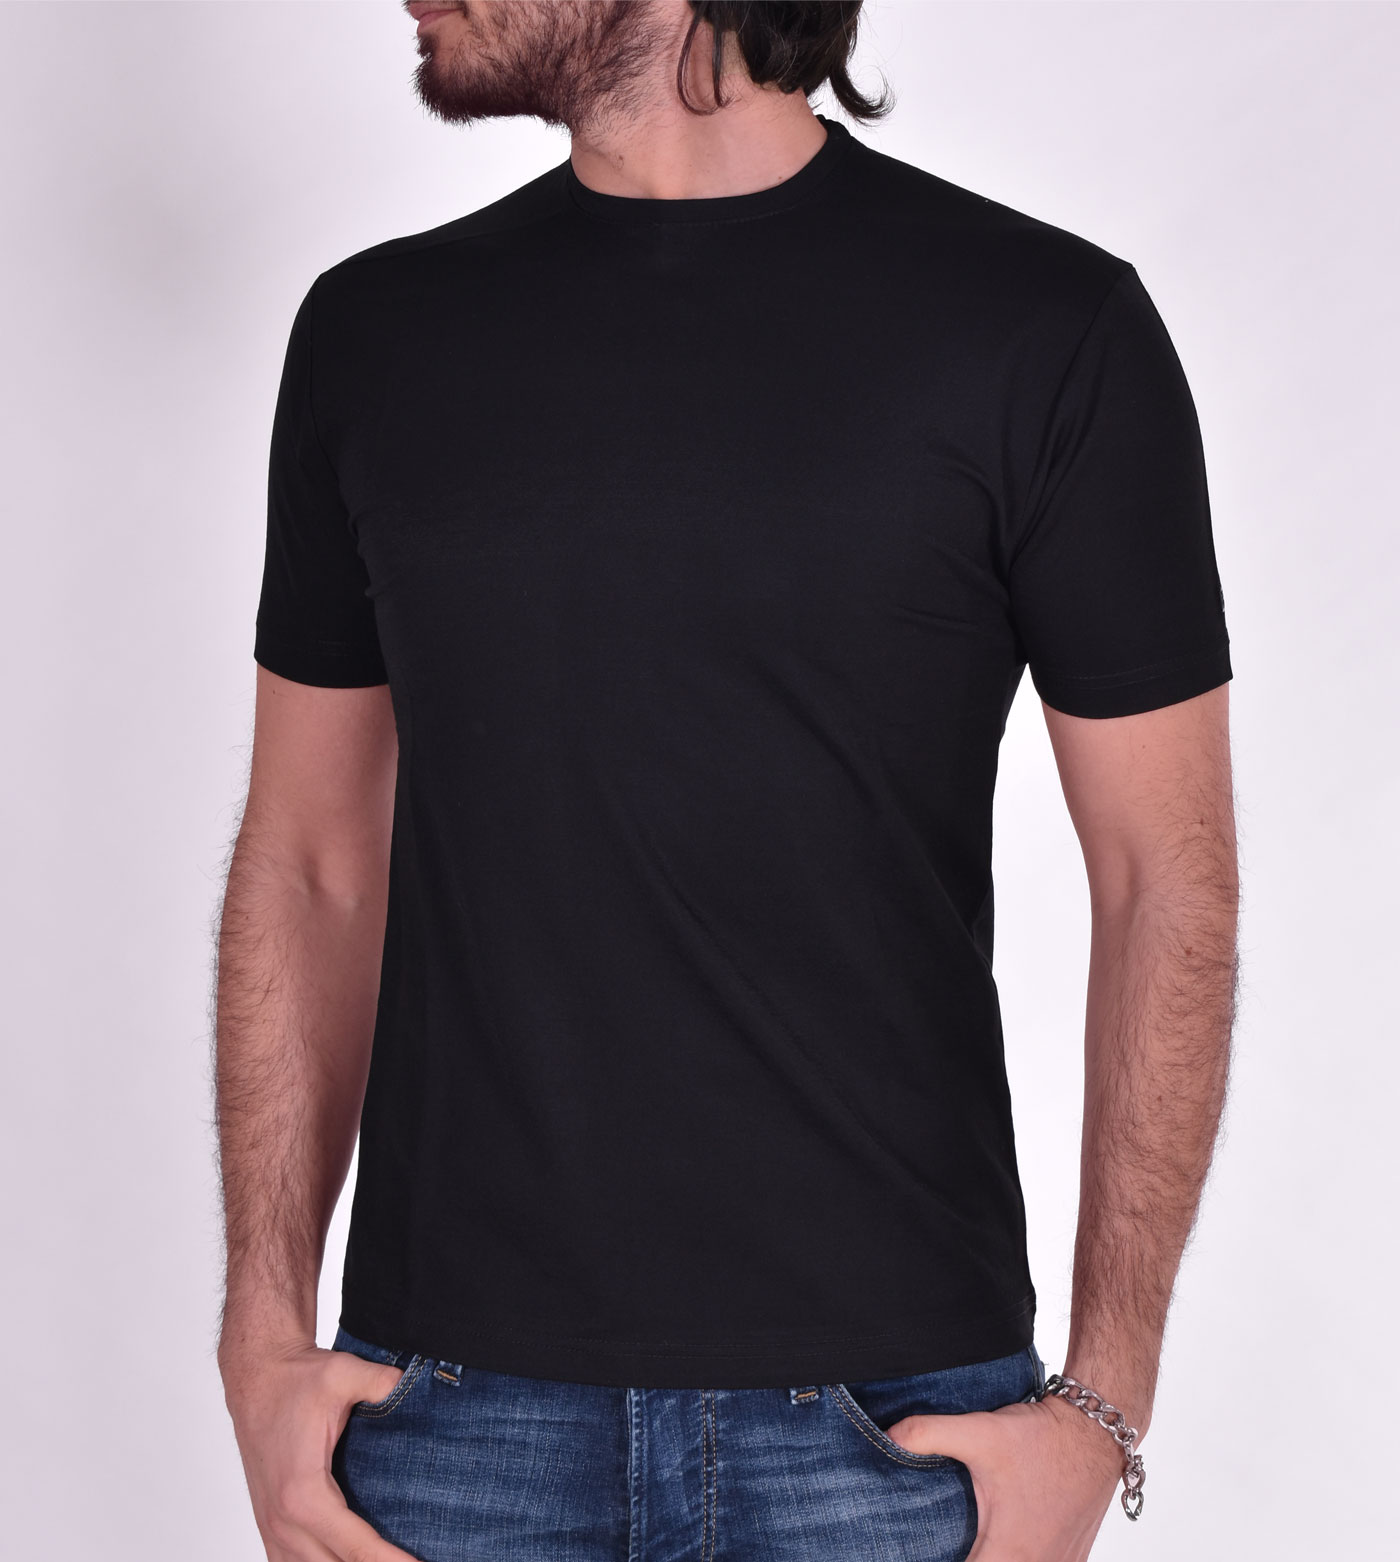 Black nylon viscose Outfit Italy t shirt OUTFIT ITALY | T005101